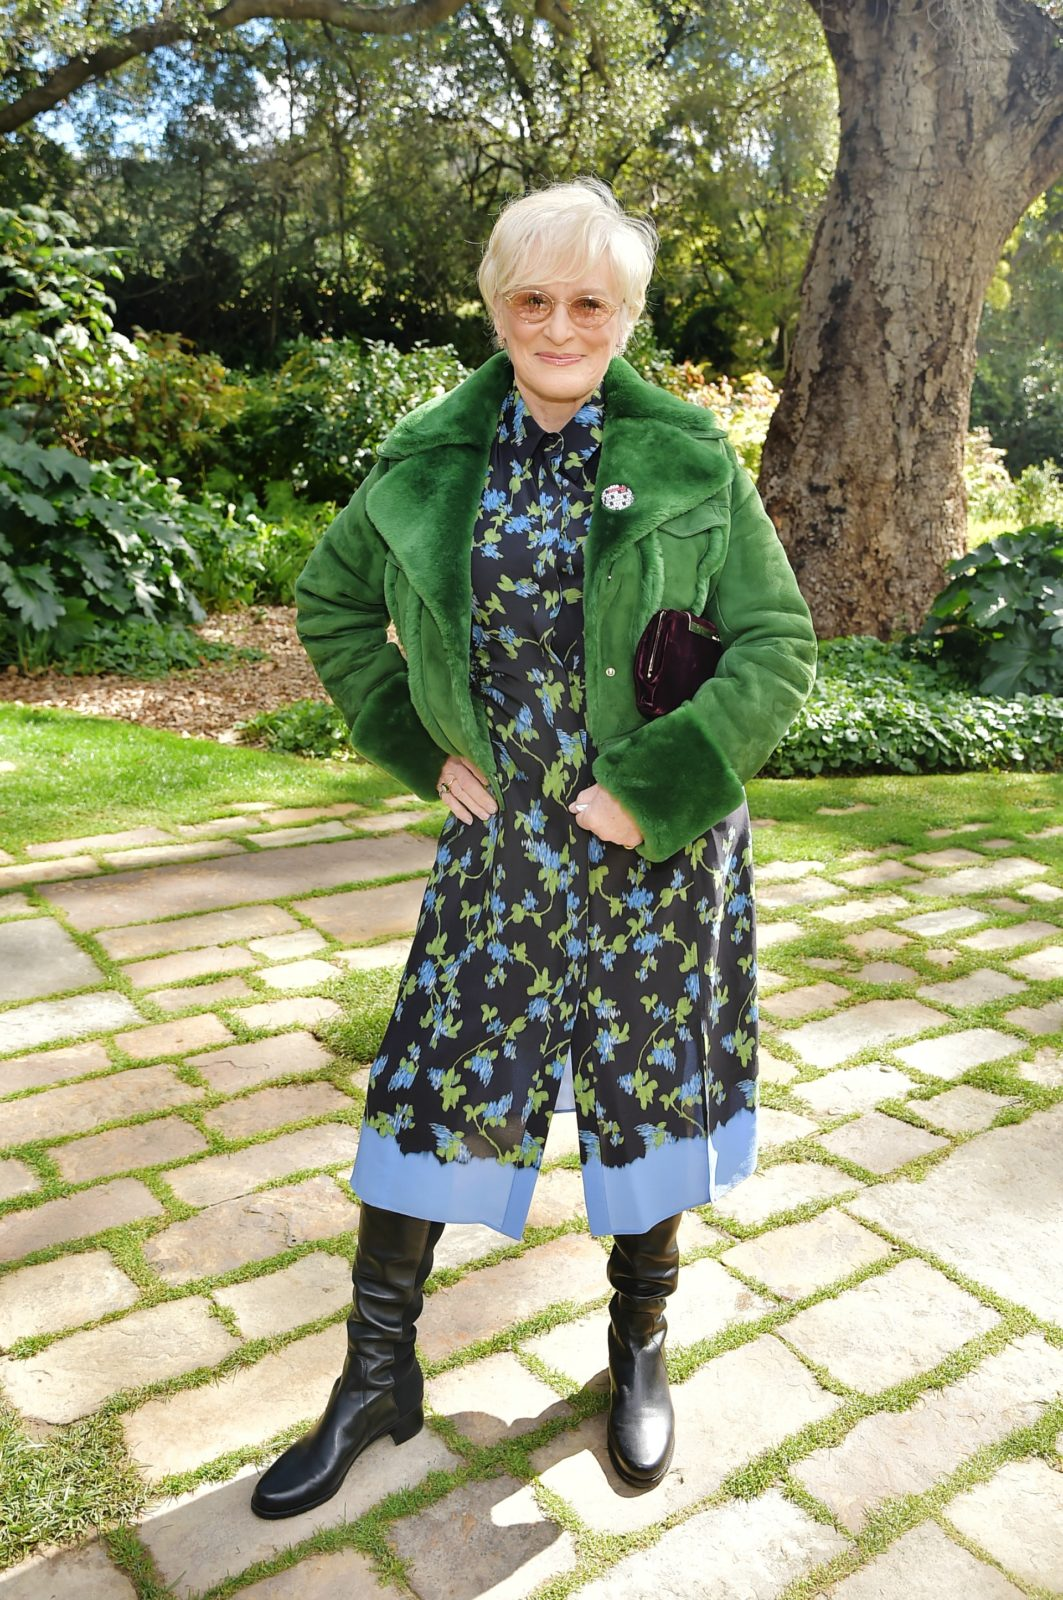 Glenn Close put on a stunning display in a vibrant green ensemble. Source: Getty